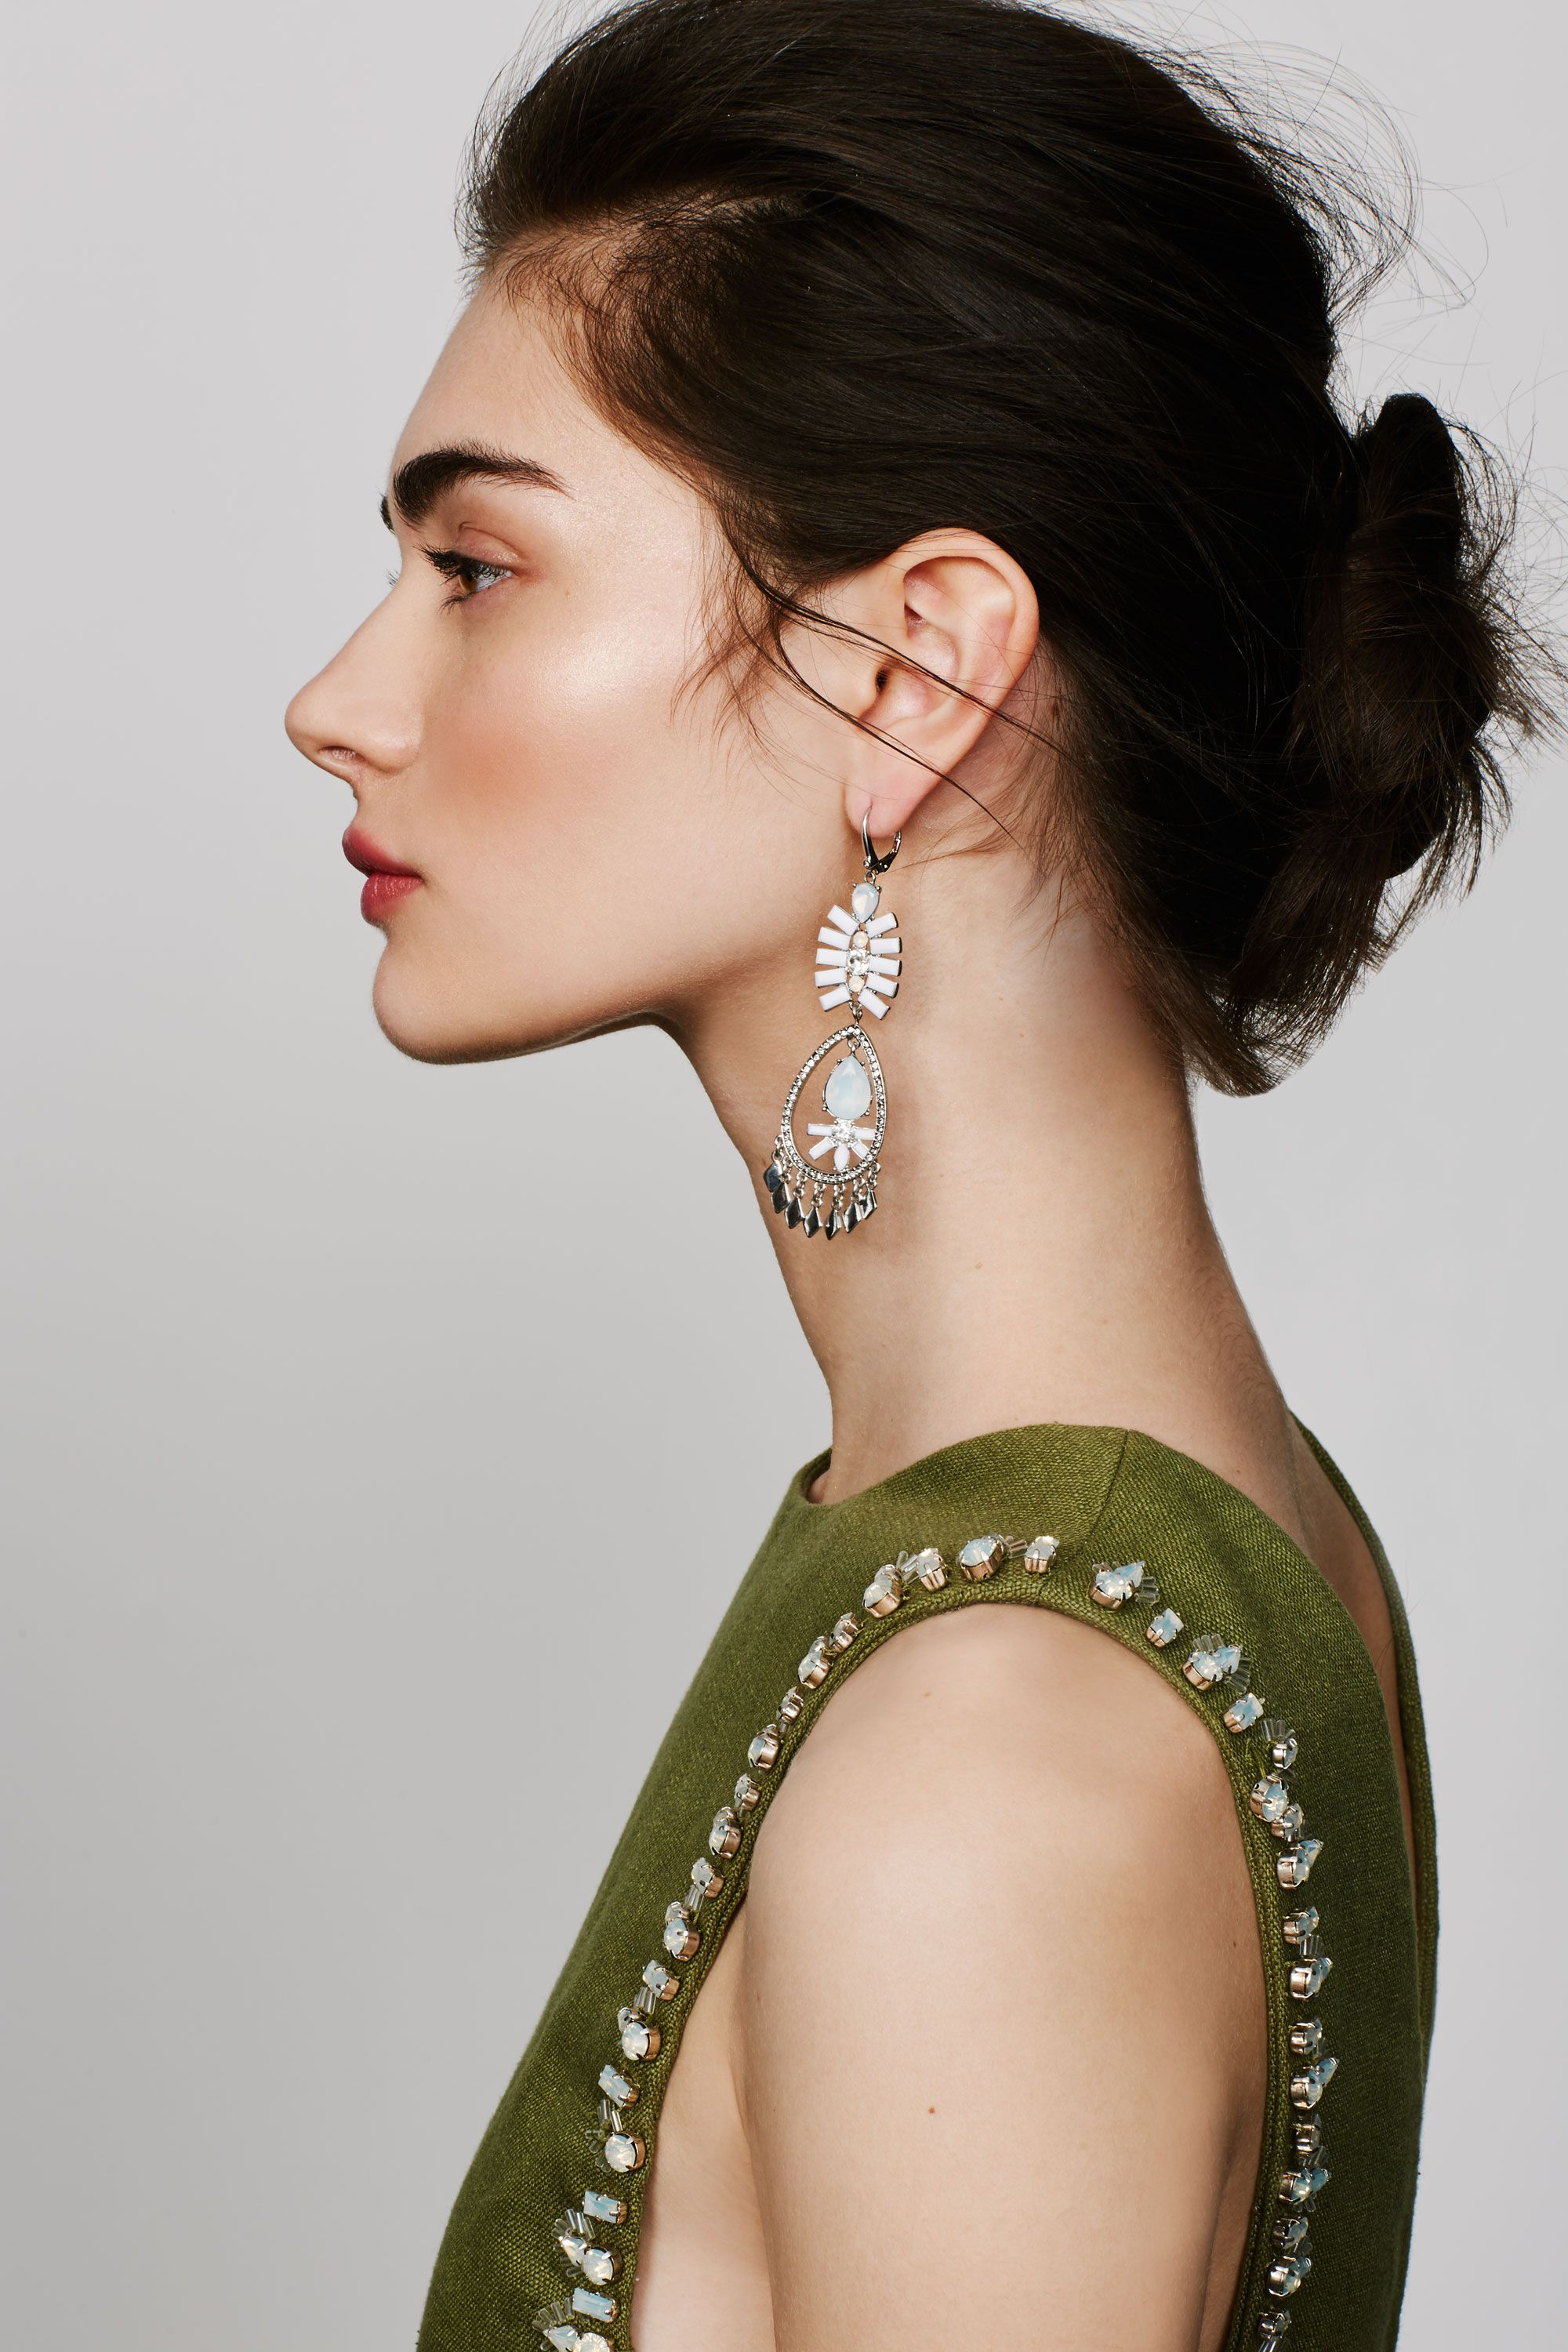 "<p>Play up an embellished top with equally dazzling earrings.  </p><p><br></p><p><br></p><p>Kent & King Crystal Chandelier Earrings, $24, <a href=""http://shop.nordstrom.com/c/jewelry/kent---king~12525/statement?&cm_mmc=Mindshare_Nordstrom-_-MayCorp-_-Hearst-_-proactive"" target=""_blank"">nordstrom.com</a>&#x3B; Tory Burch 'Rachel' Embellished Linen Tabard Tank, $895, <a href=""http://shop.nordstrom.com/s/tory-burch-rachel-embellished-linen-tabard-tank/4256583?&cm_mmc=Mindshare_Nordstrom-_-MayCorp-_-Hearst-_-proactive"" target=""_blank"">nordstrom.com</a></p>"